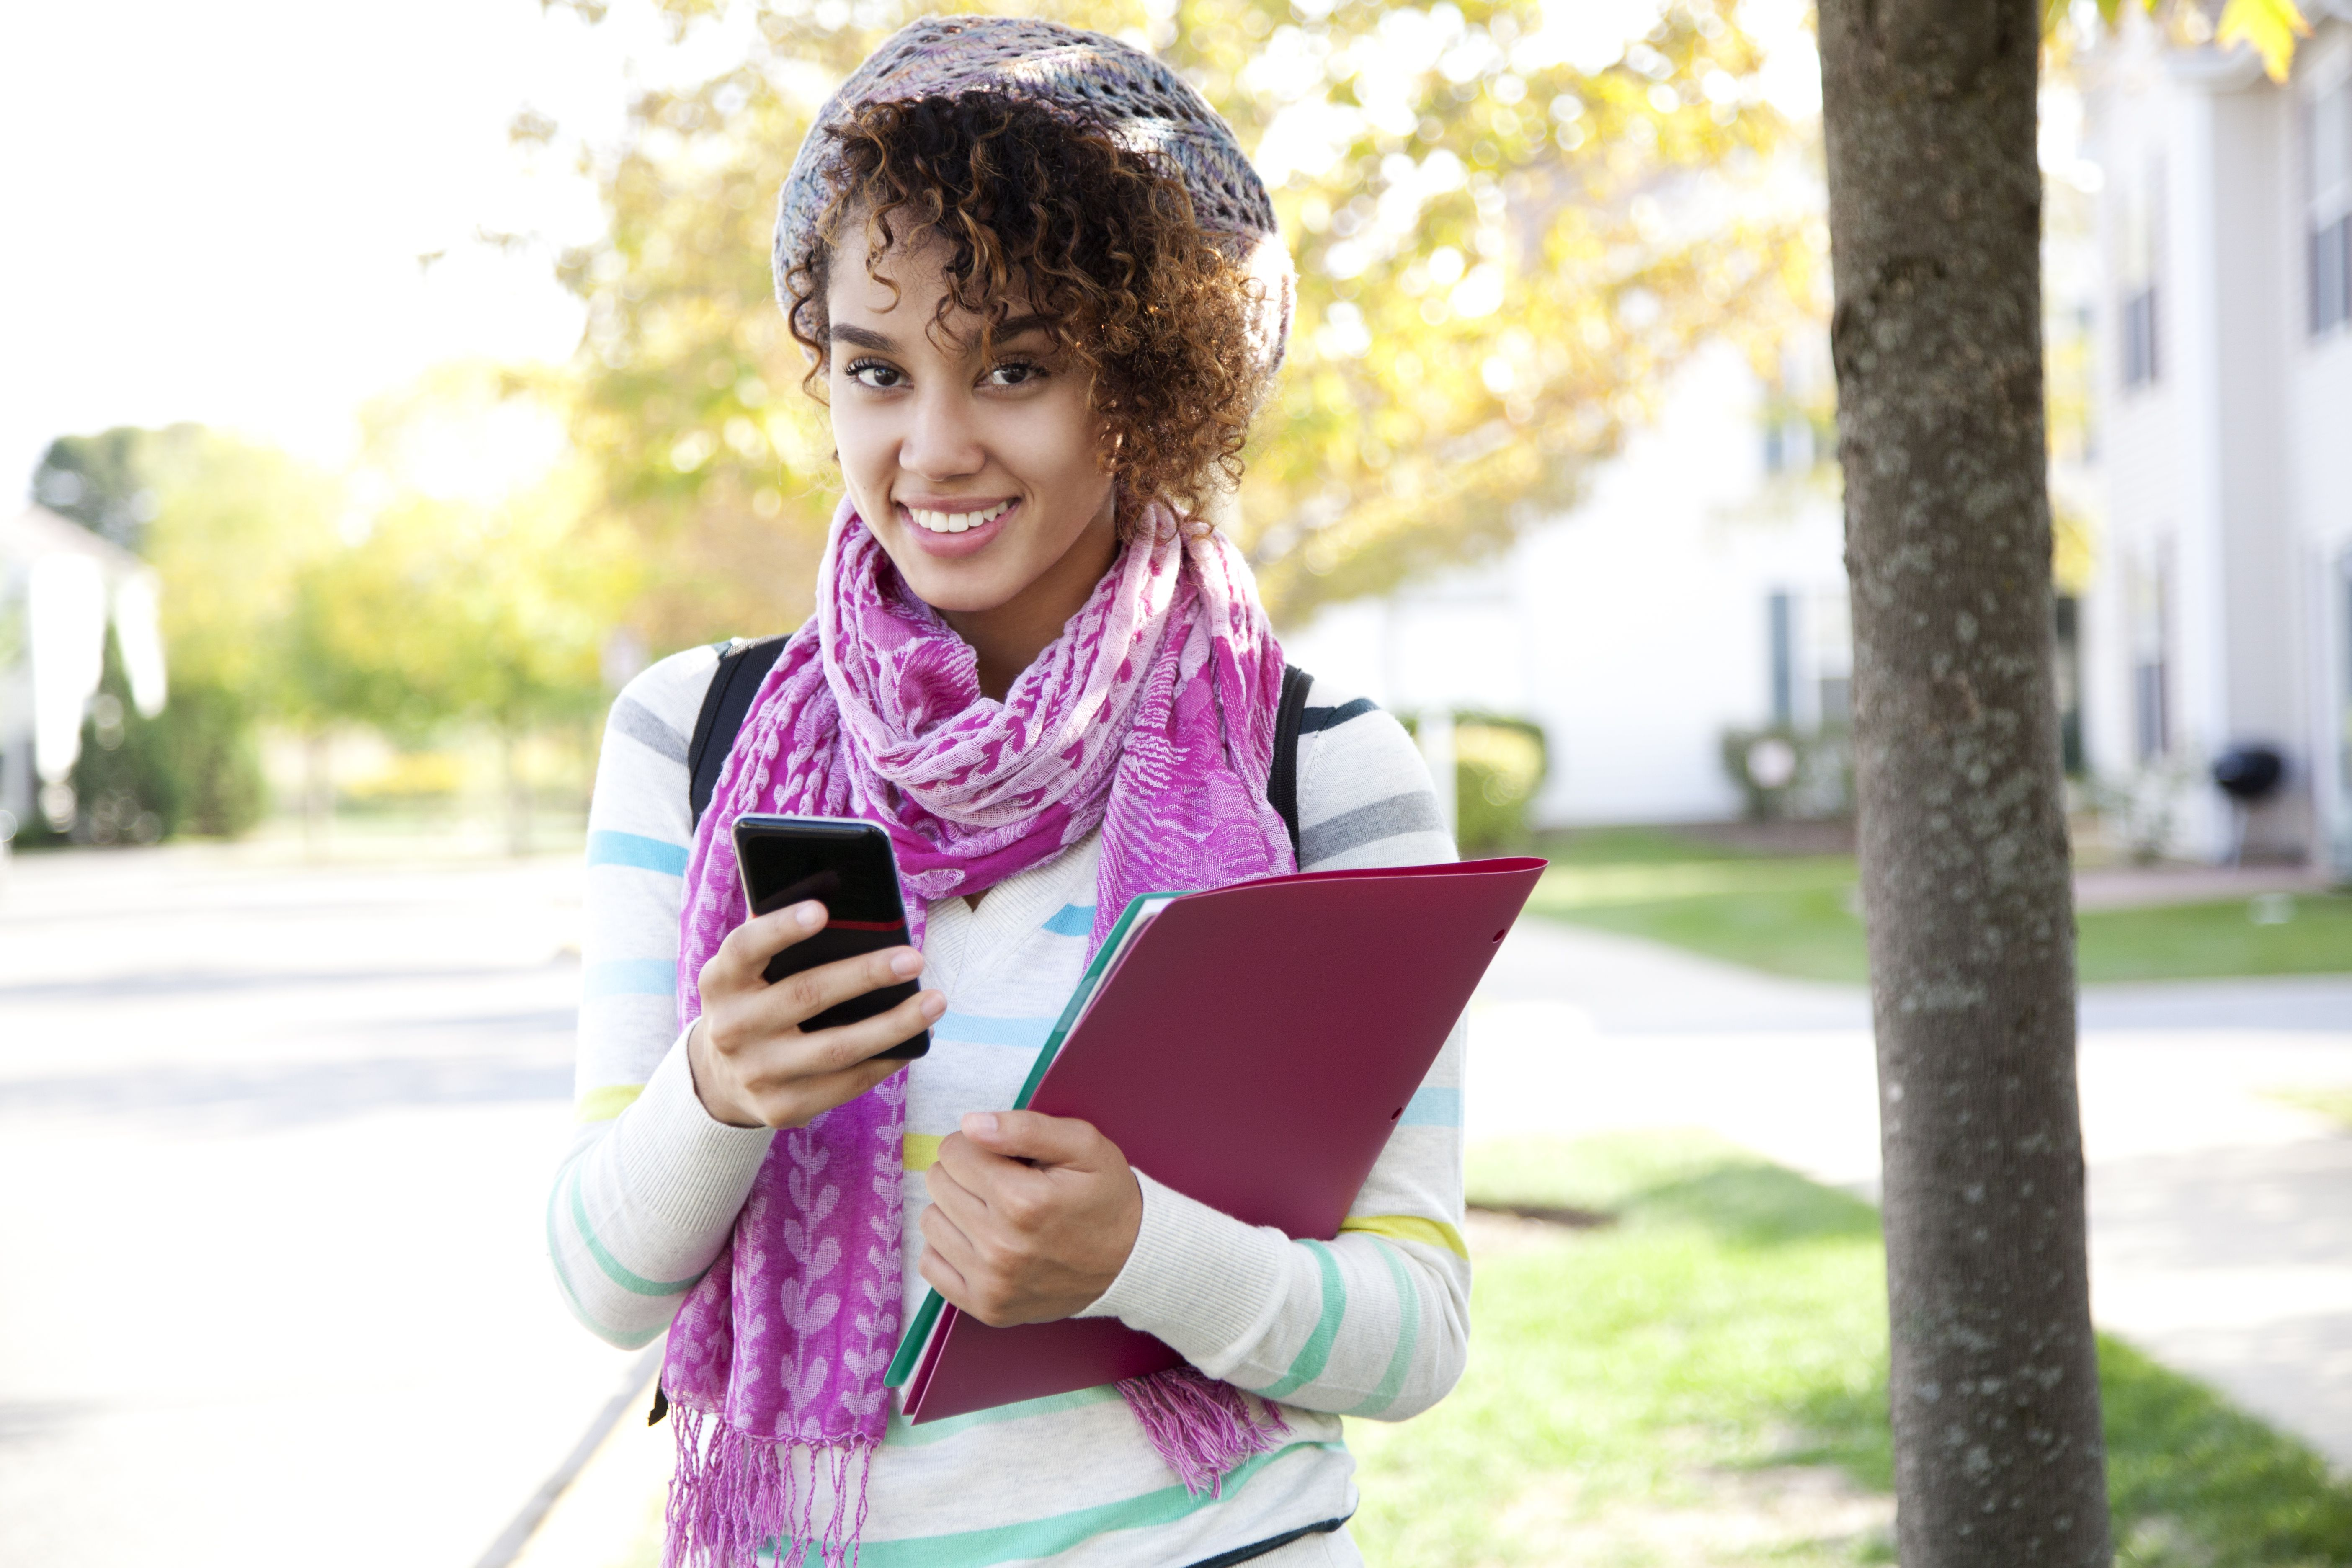 Student with folder and phone